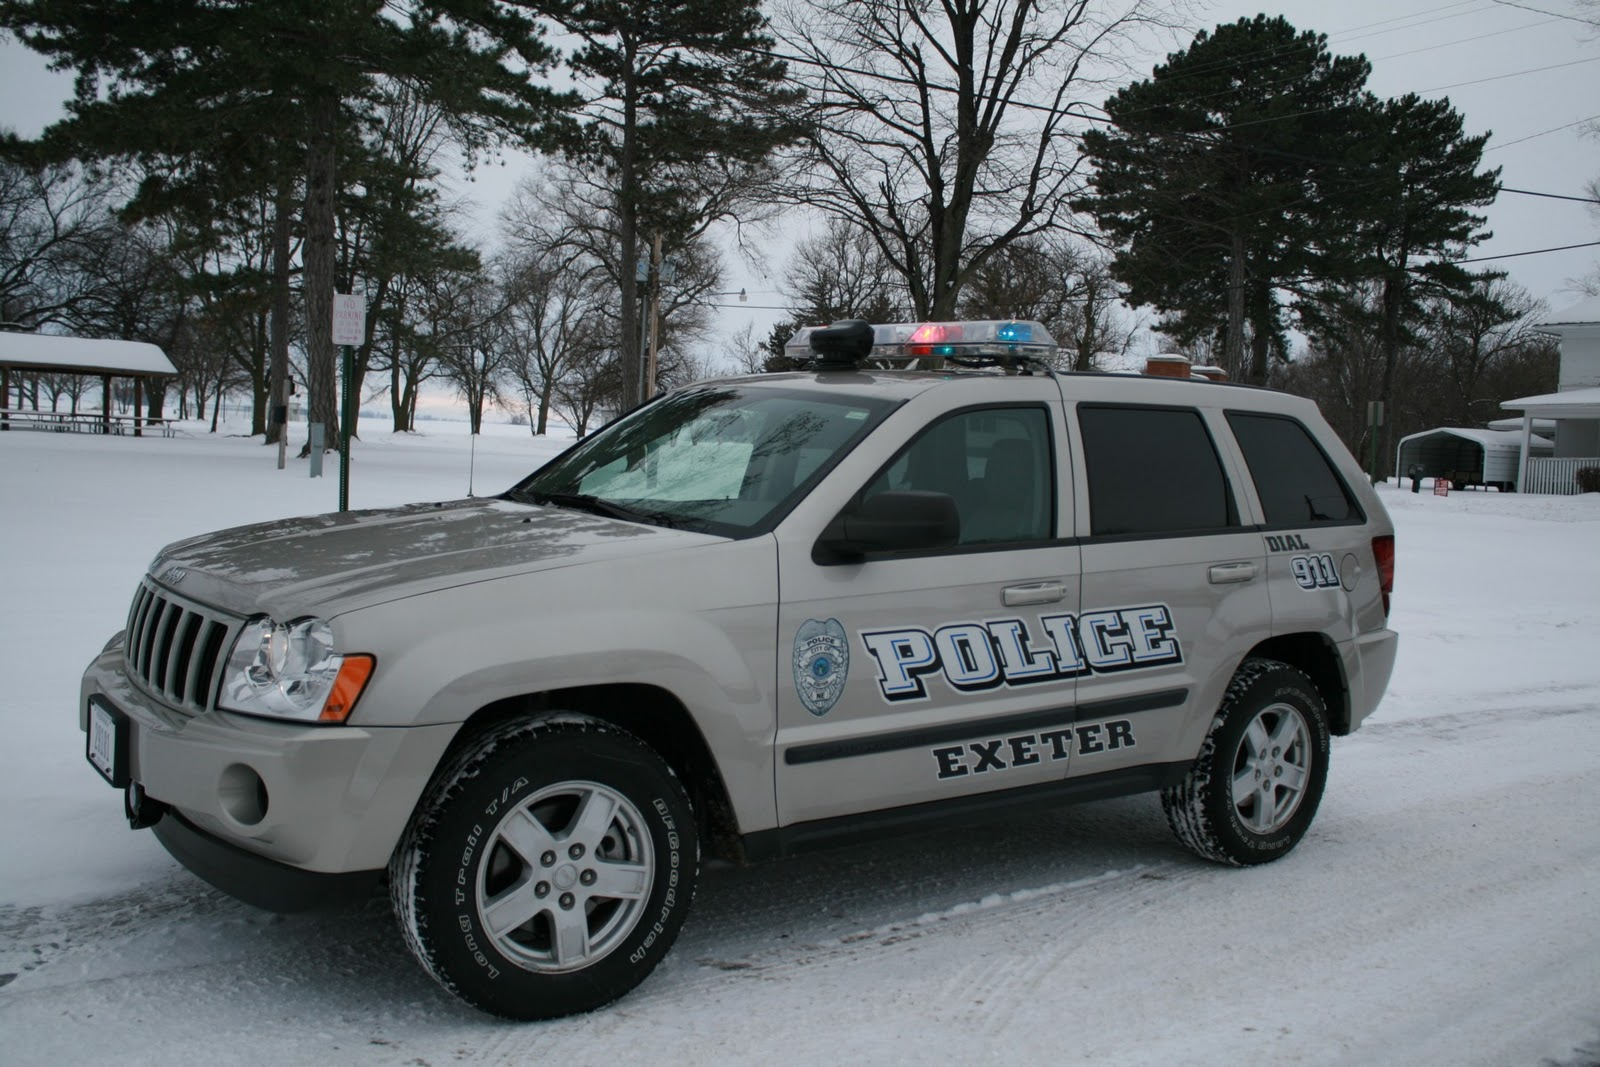 a new police vehicle and